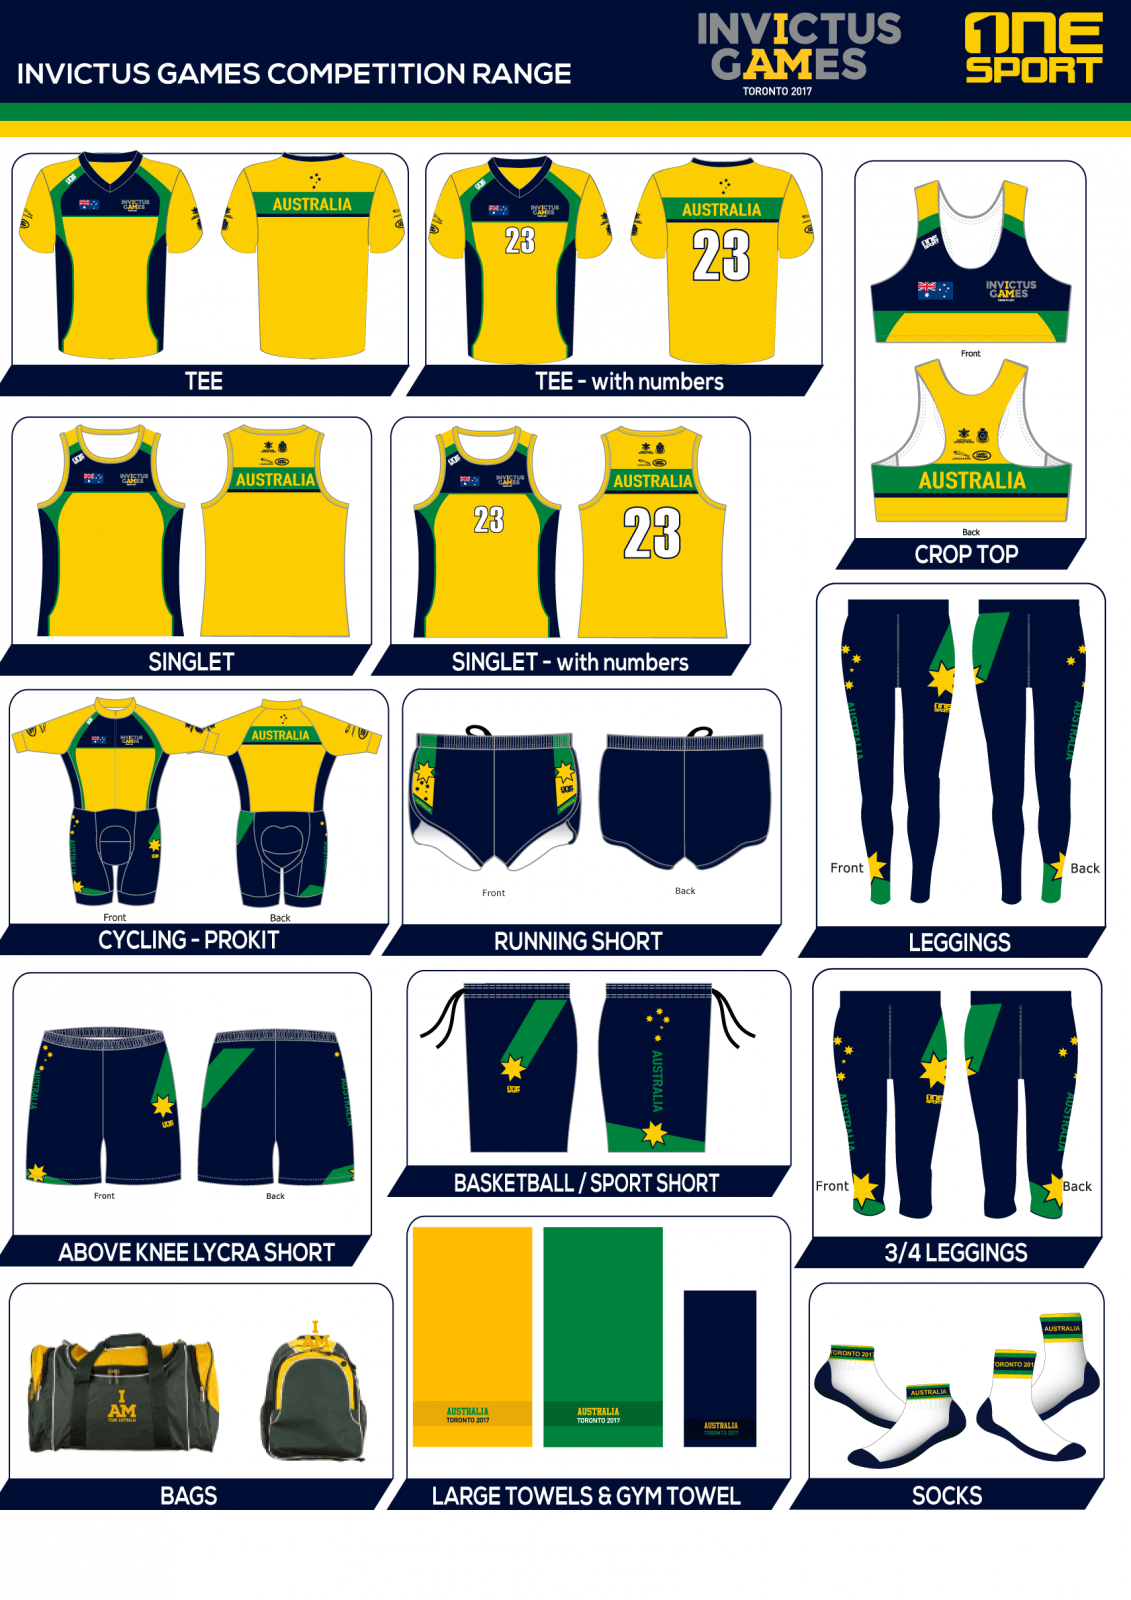 17273 Invictus Games Competition Story 1 - TEAMWEAR BASKETBALL